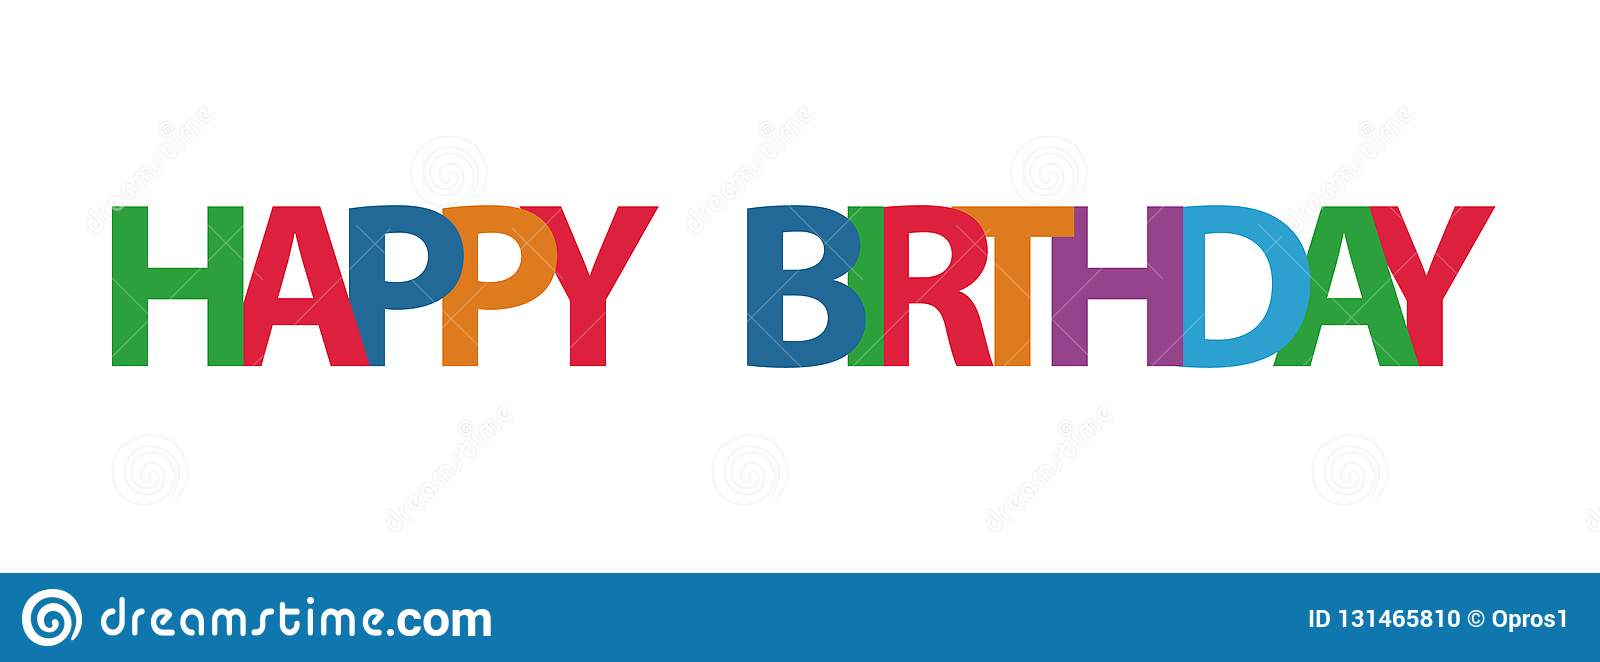 Happy Birthday Typographic Vector Design For Greeting Cards Print And Cloths